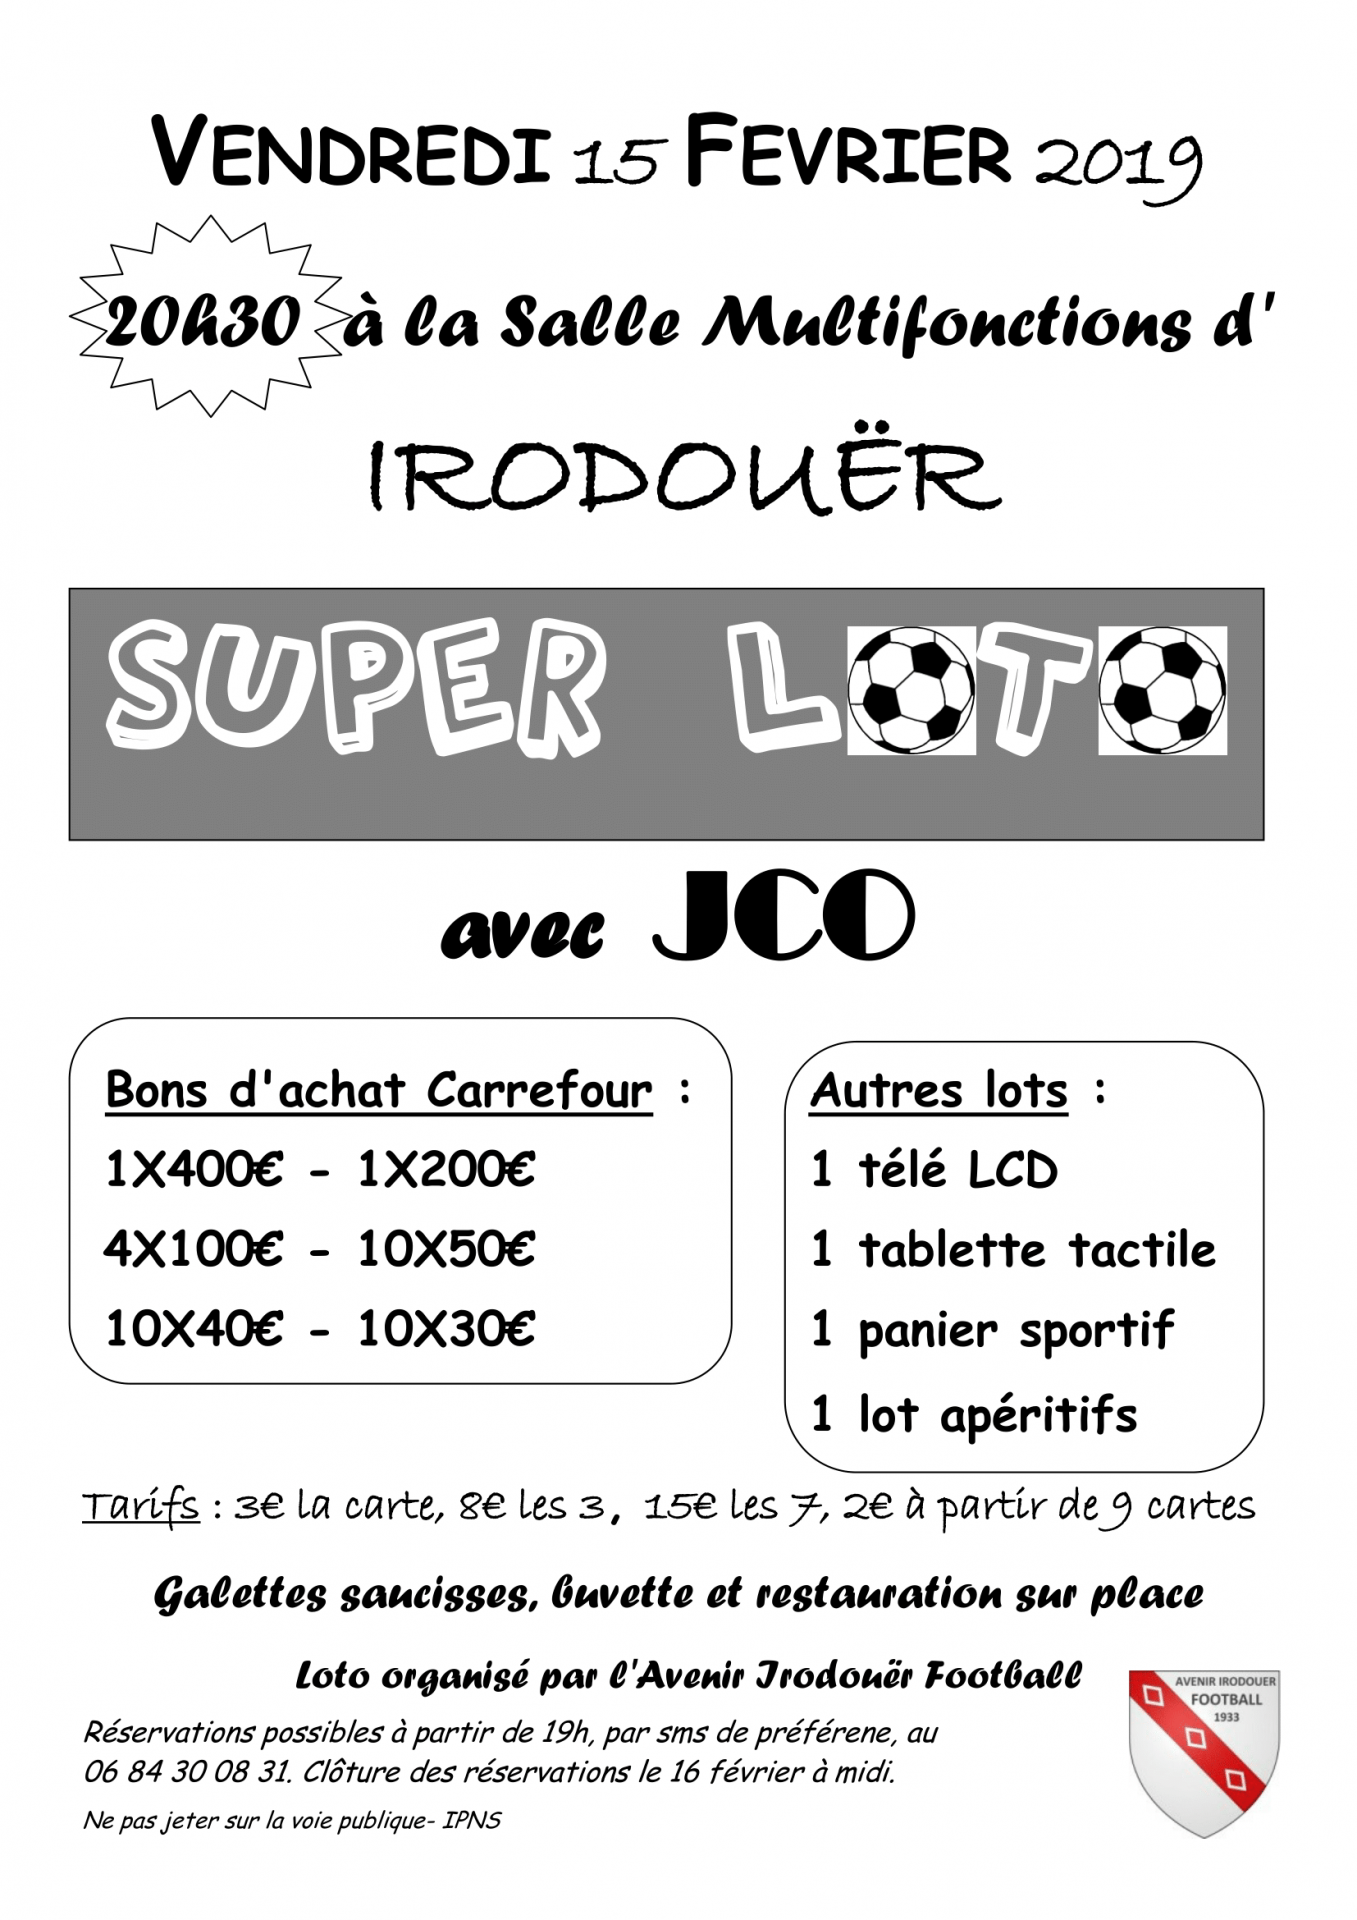 Version affiche loto fevrier 2019 1